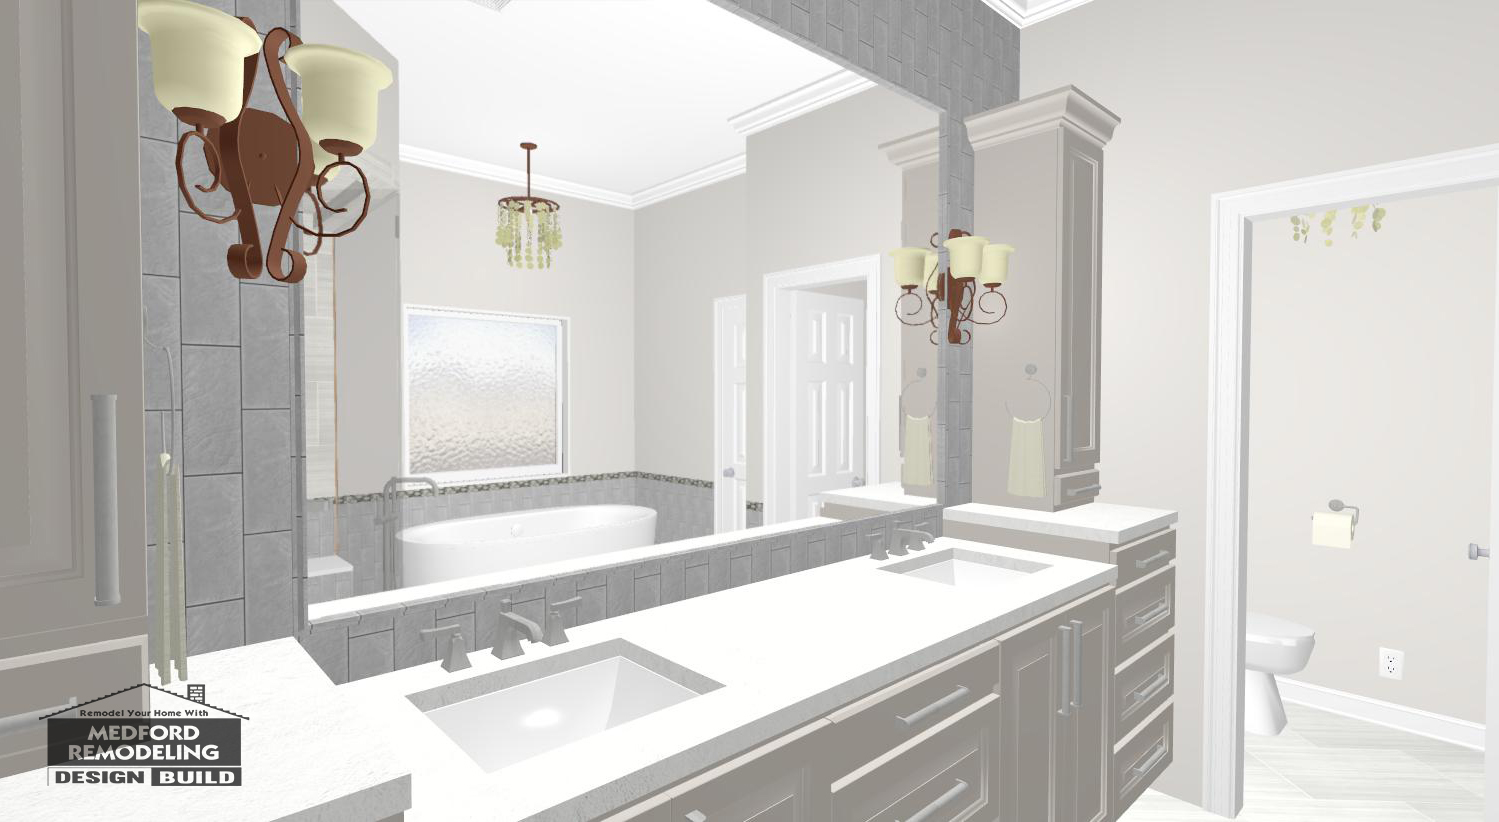 Our Projects: A Glamorous Master Bathroom Renovation